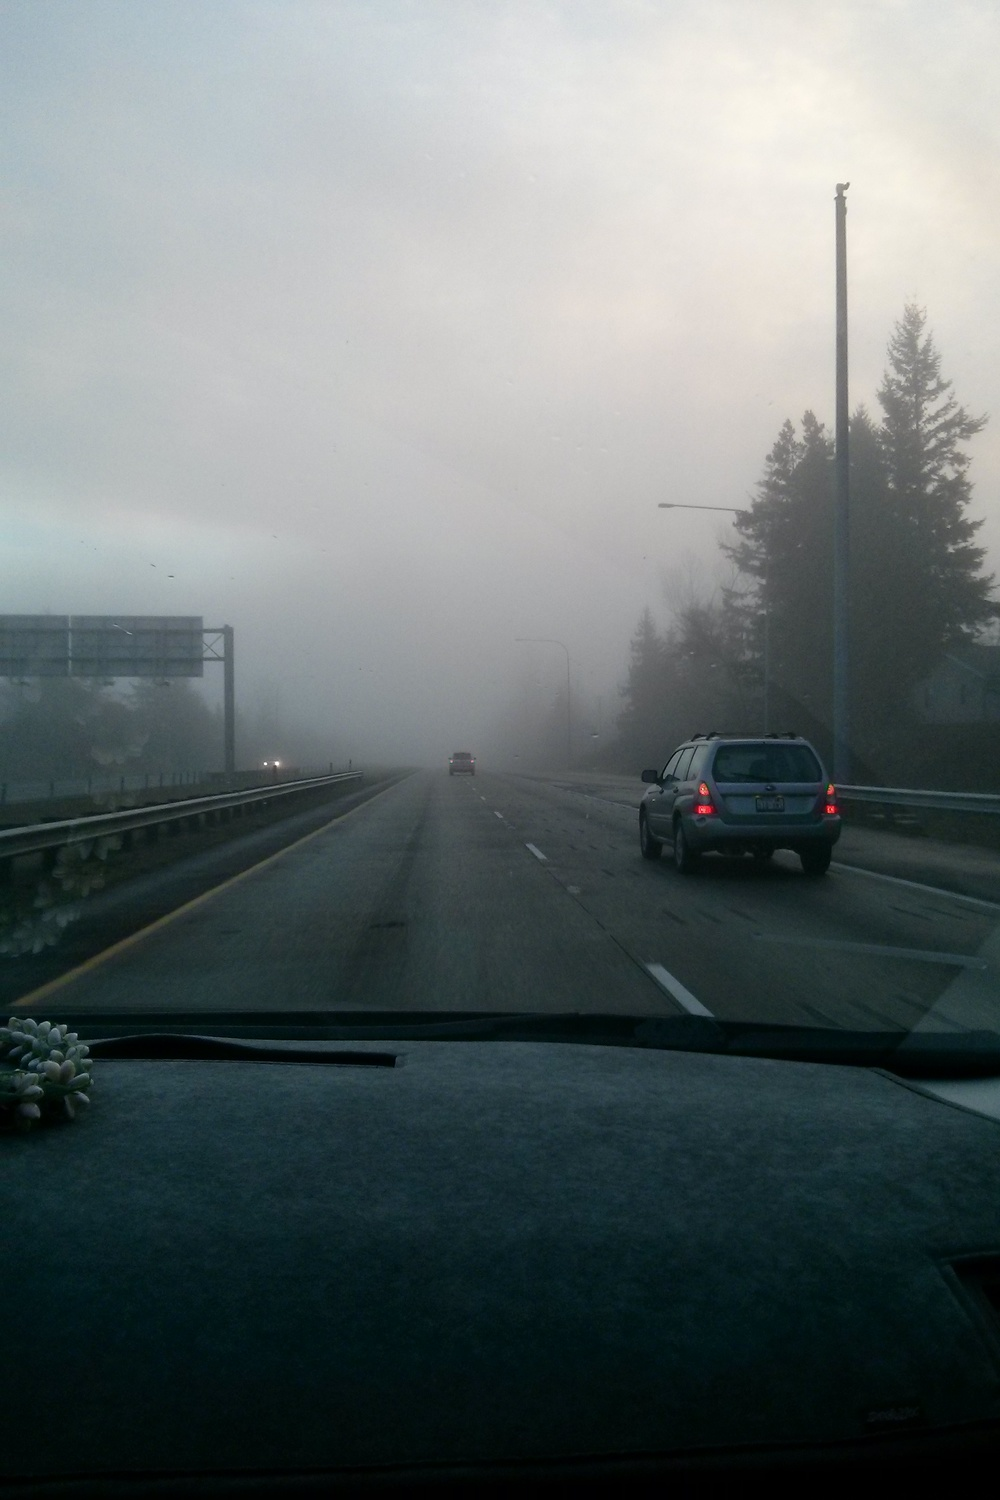 Road trips in the fog